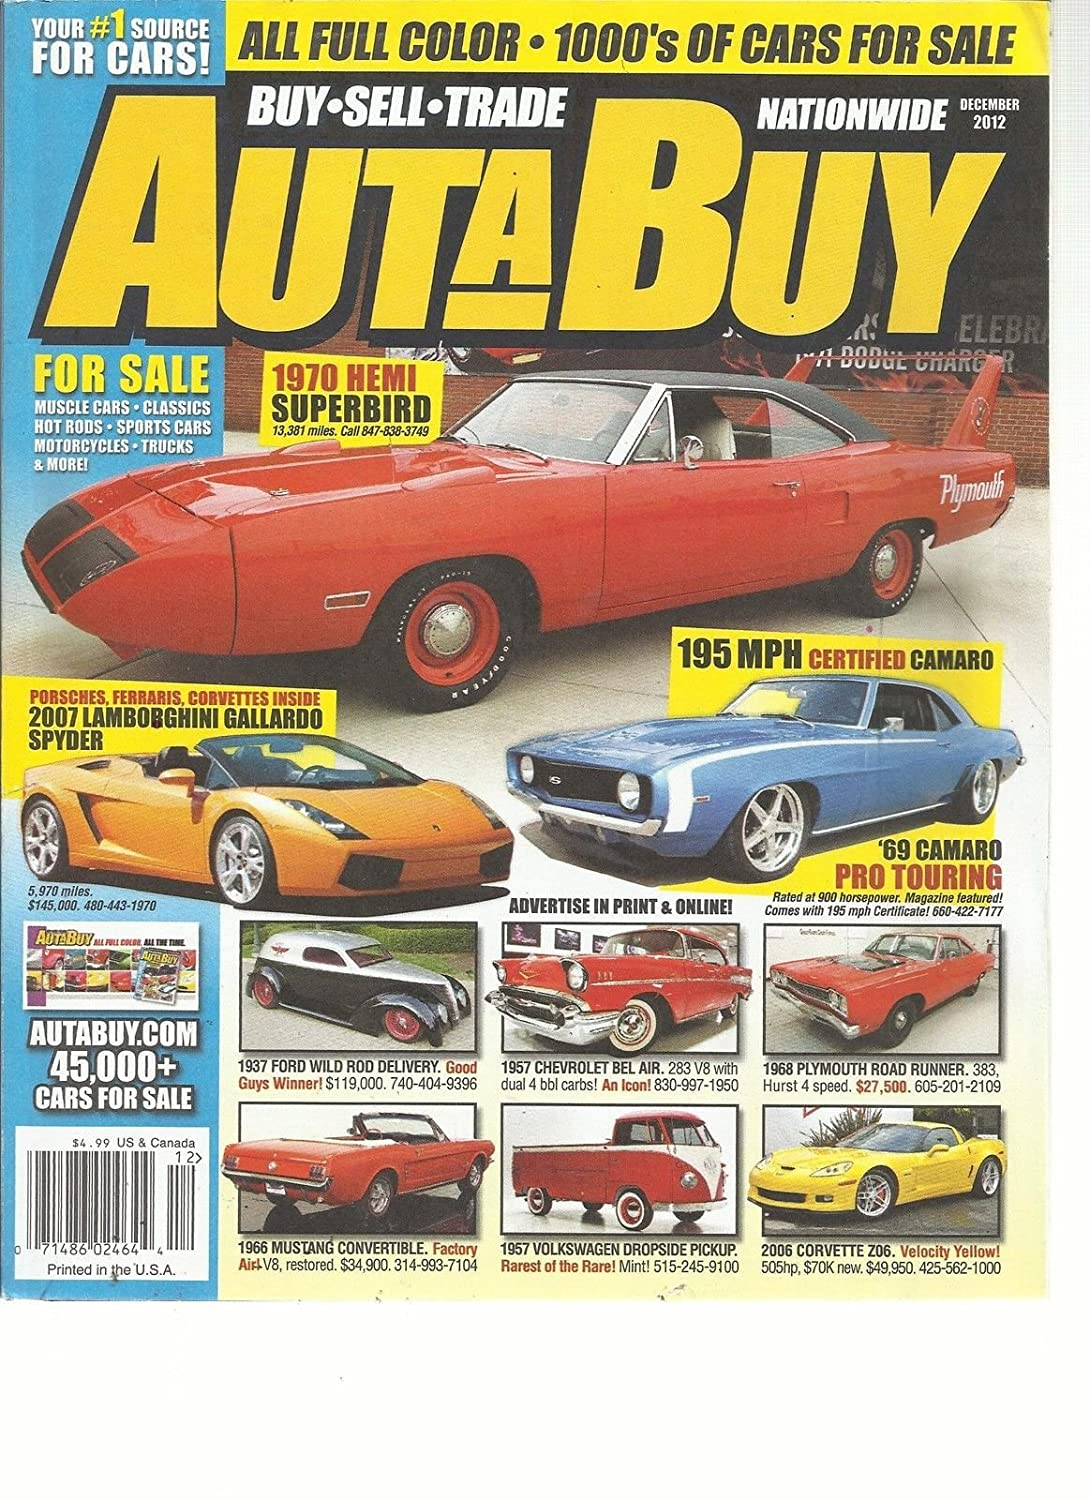 Auta Buy Cars December 2012 Sell Trade 1966 Chevy Bel Air For Sale Nationwide Your 1 Source Everything Else